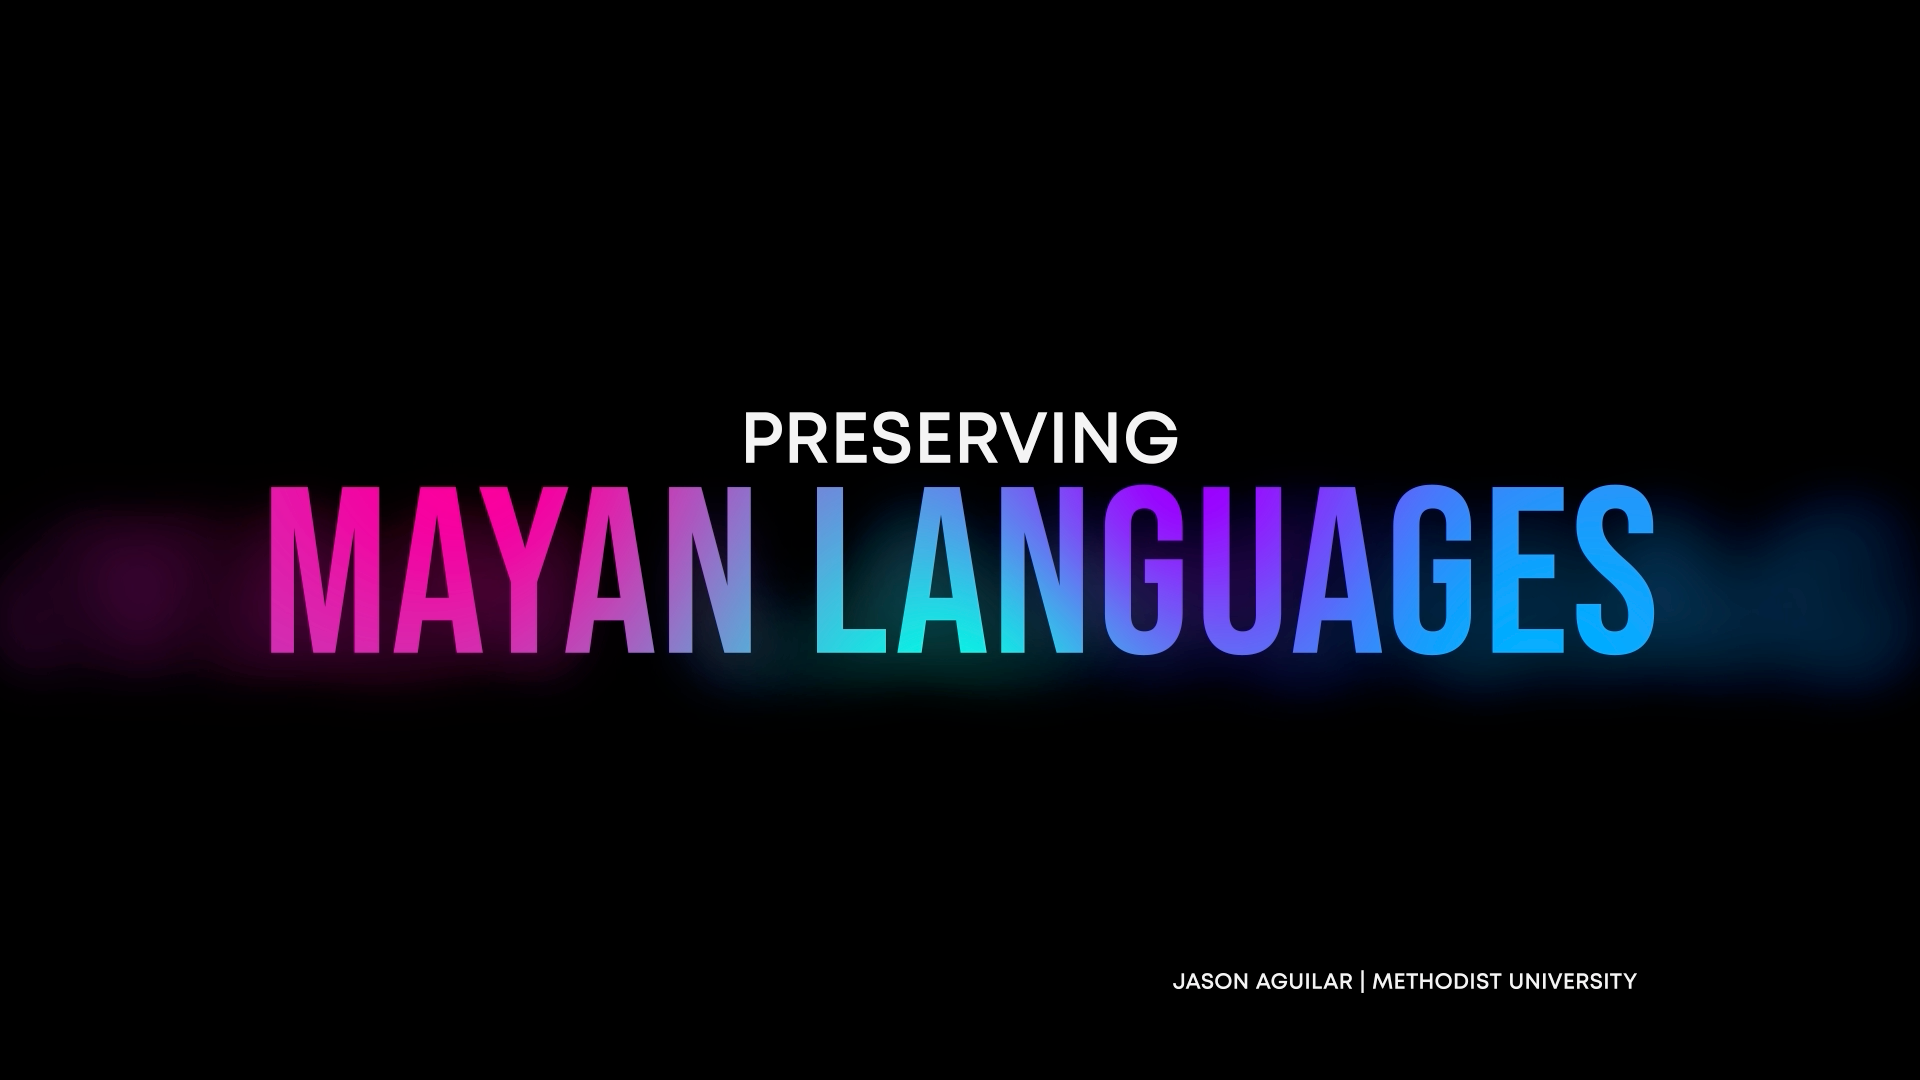 PRESERVING MAYAN LANGUAGES - JASON AGUILAR